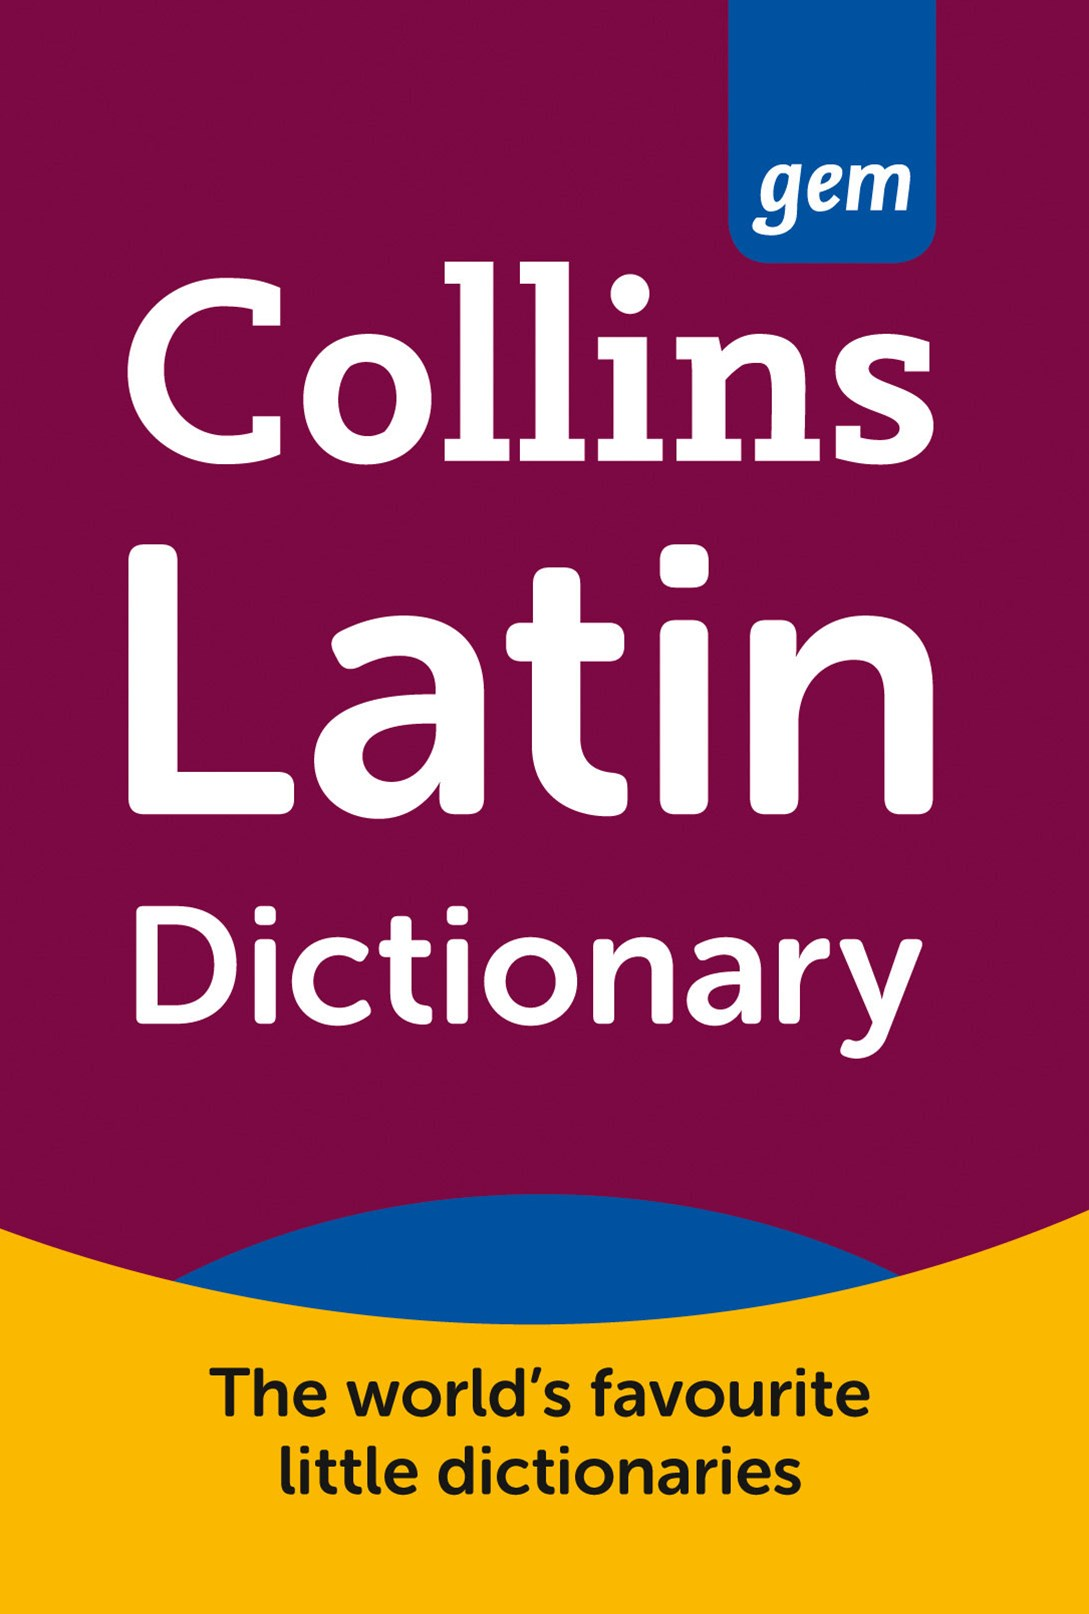 Collins Gem Latin Dictionary [2nd Edition]